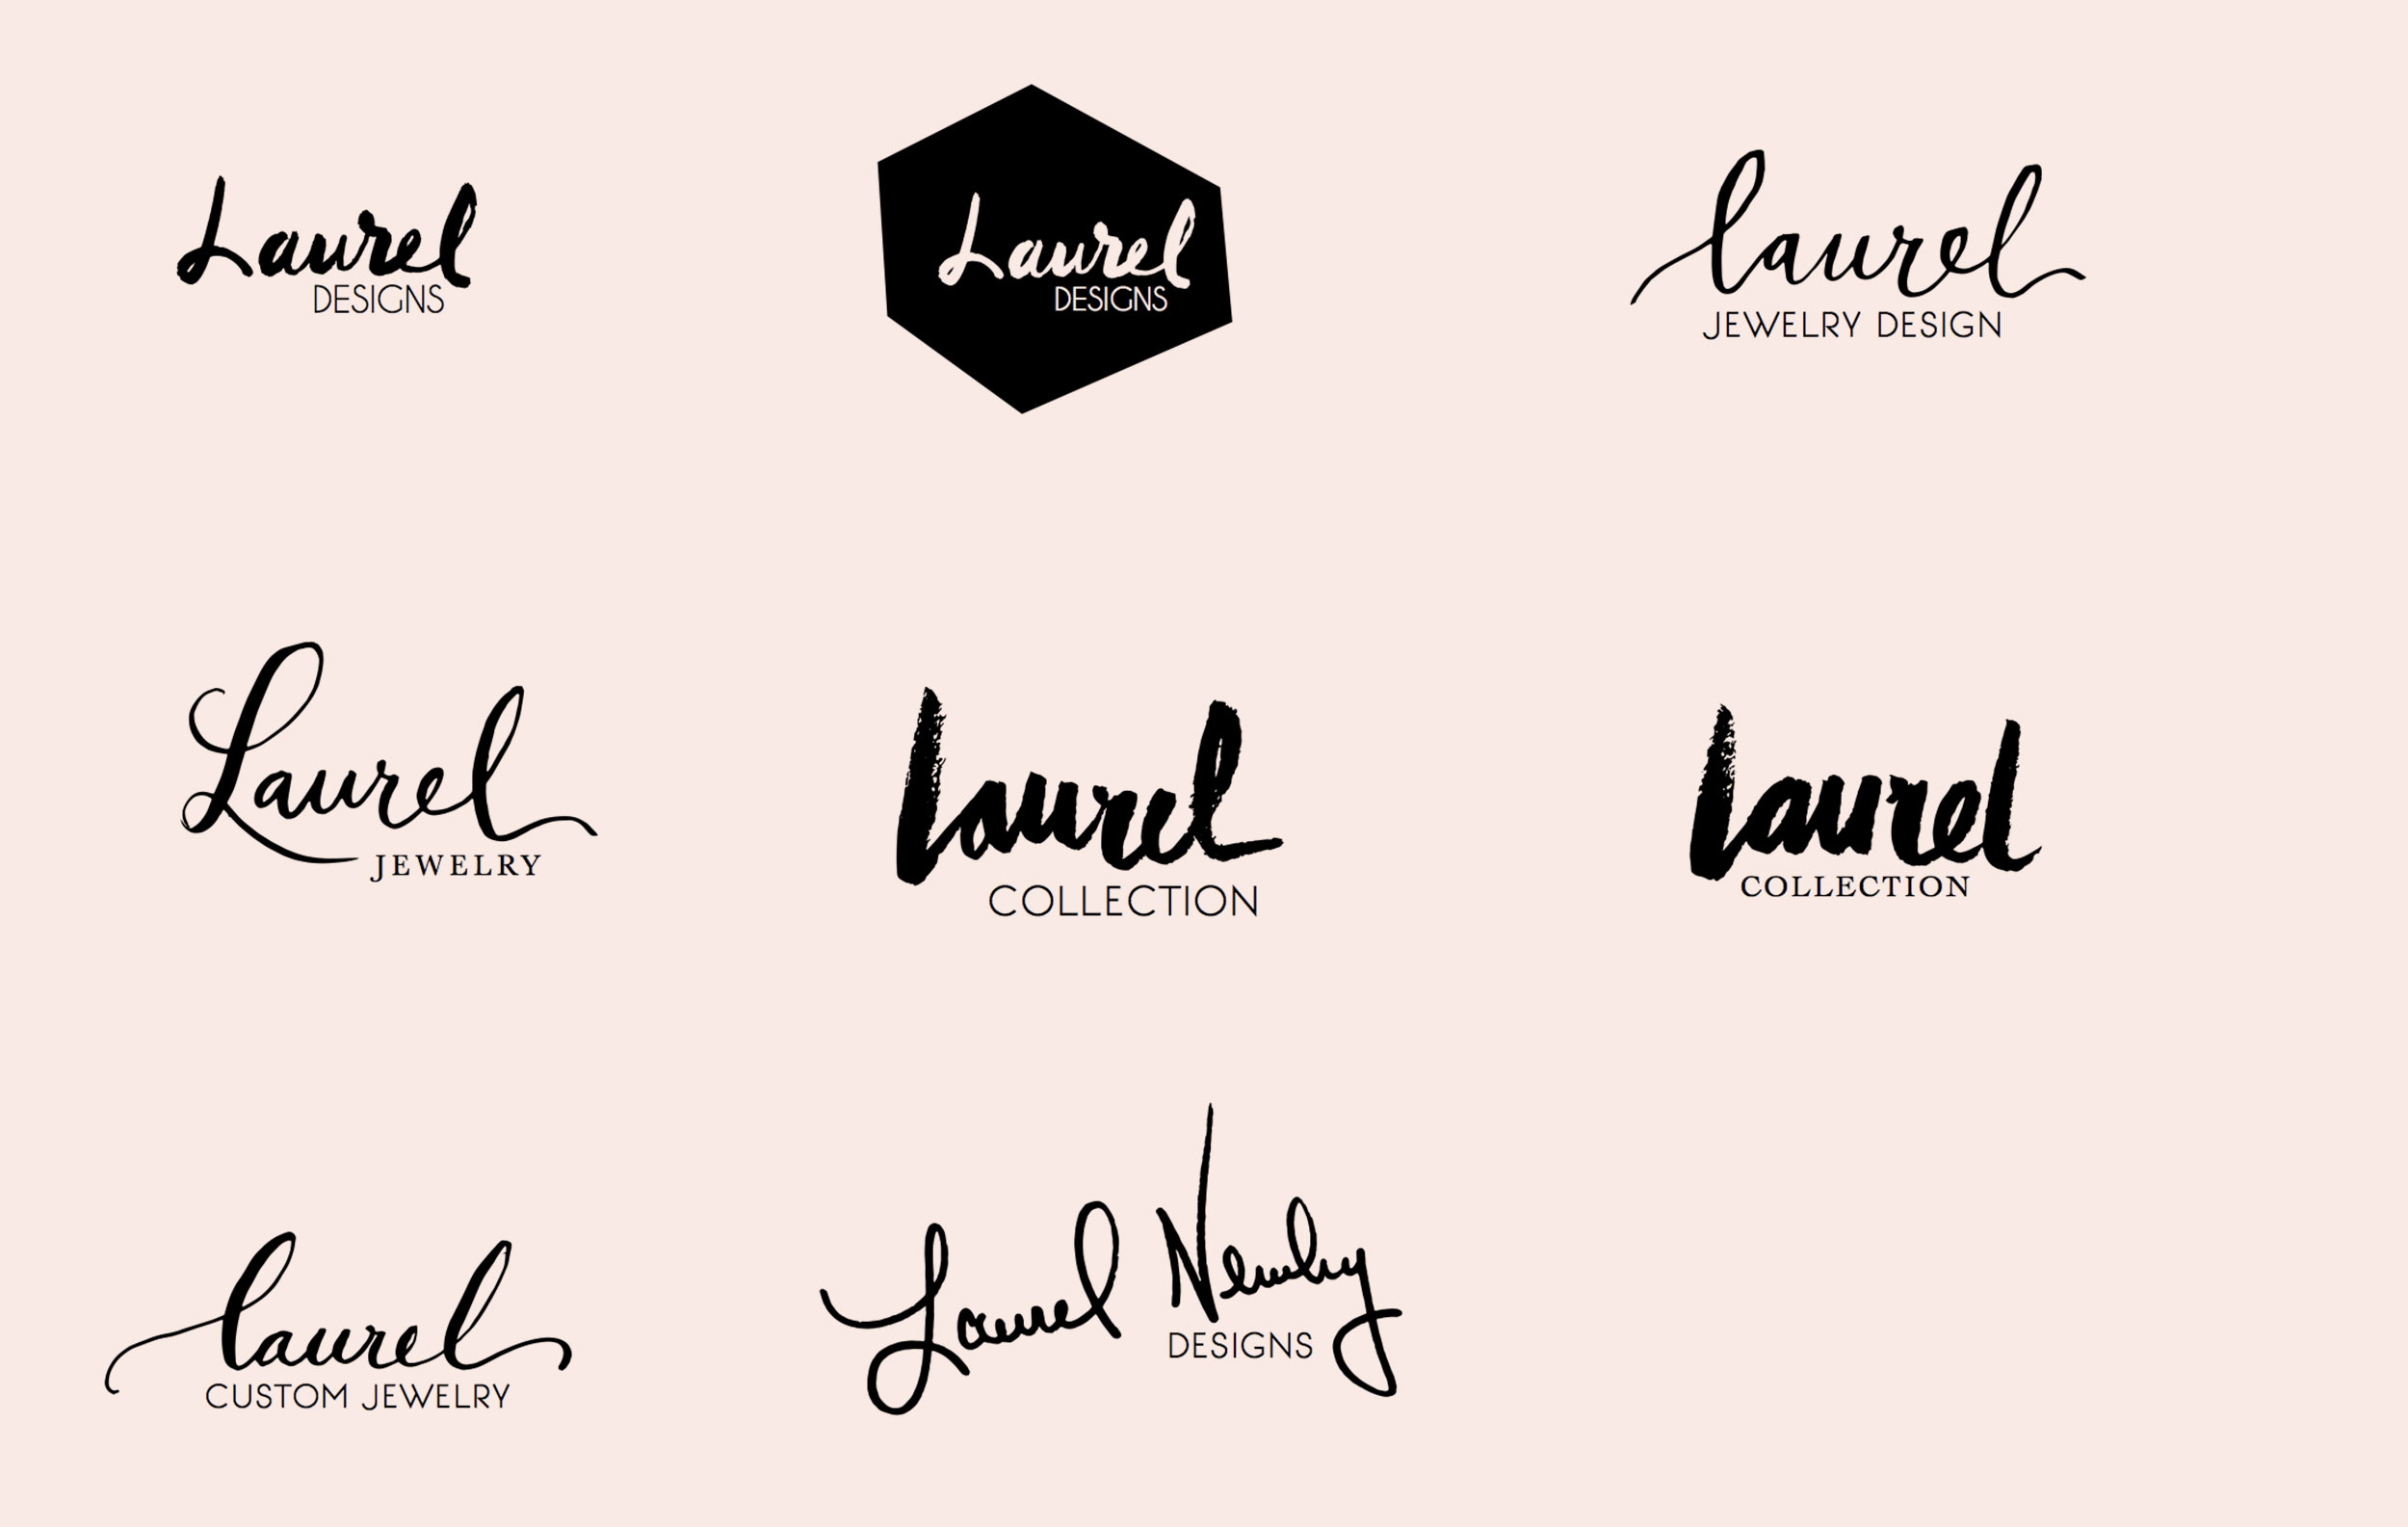 Laurel Jewelry Design handwritten logo variations.